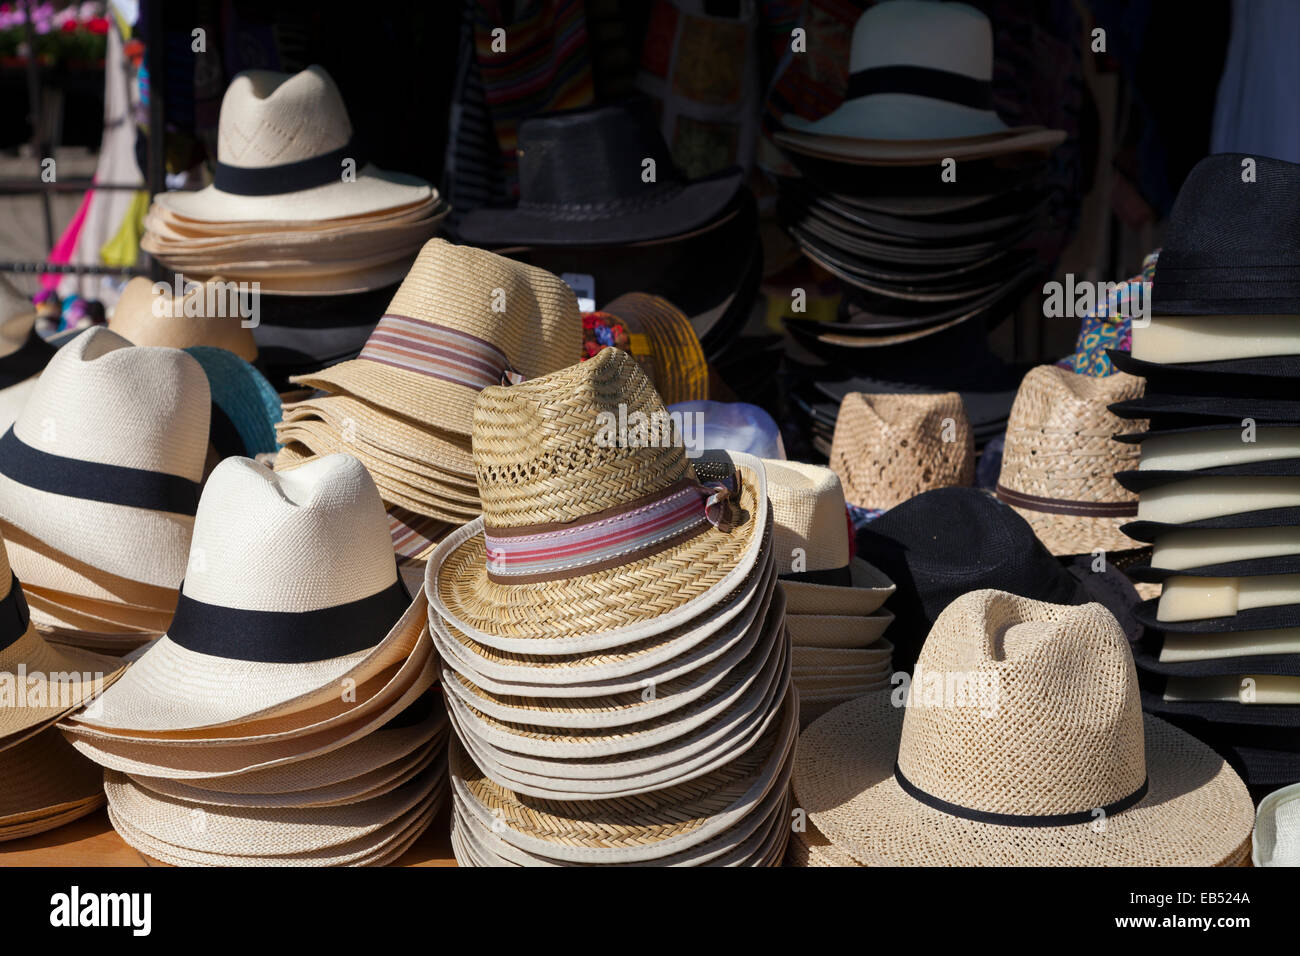 c6d134642d88f5 Stacks of mens summer hats for sale on market stall · Peter Noyce GENS / Alamy  Stock Photo